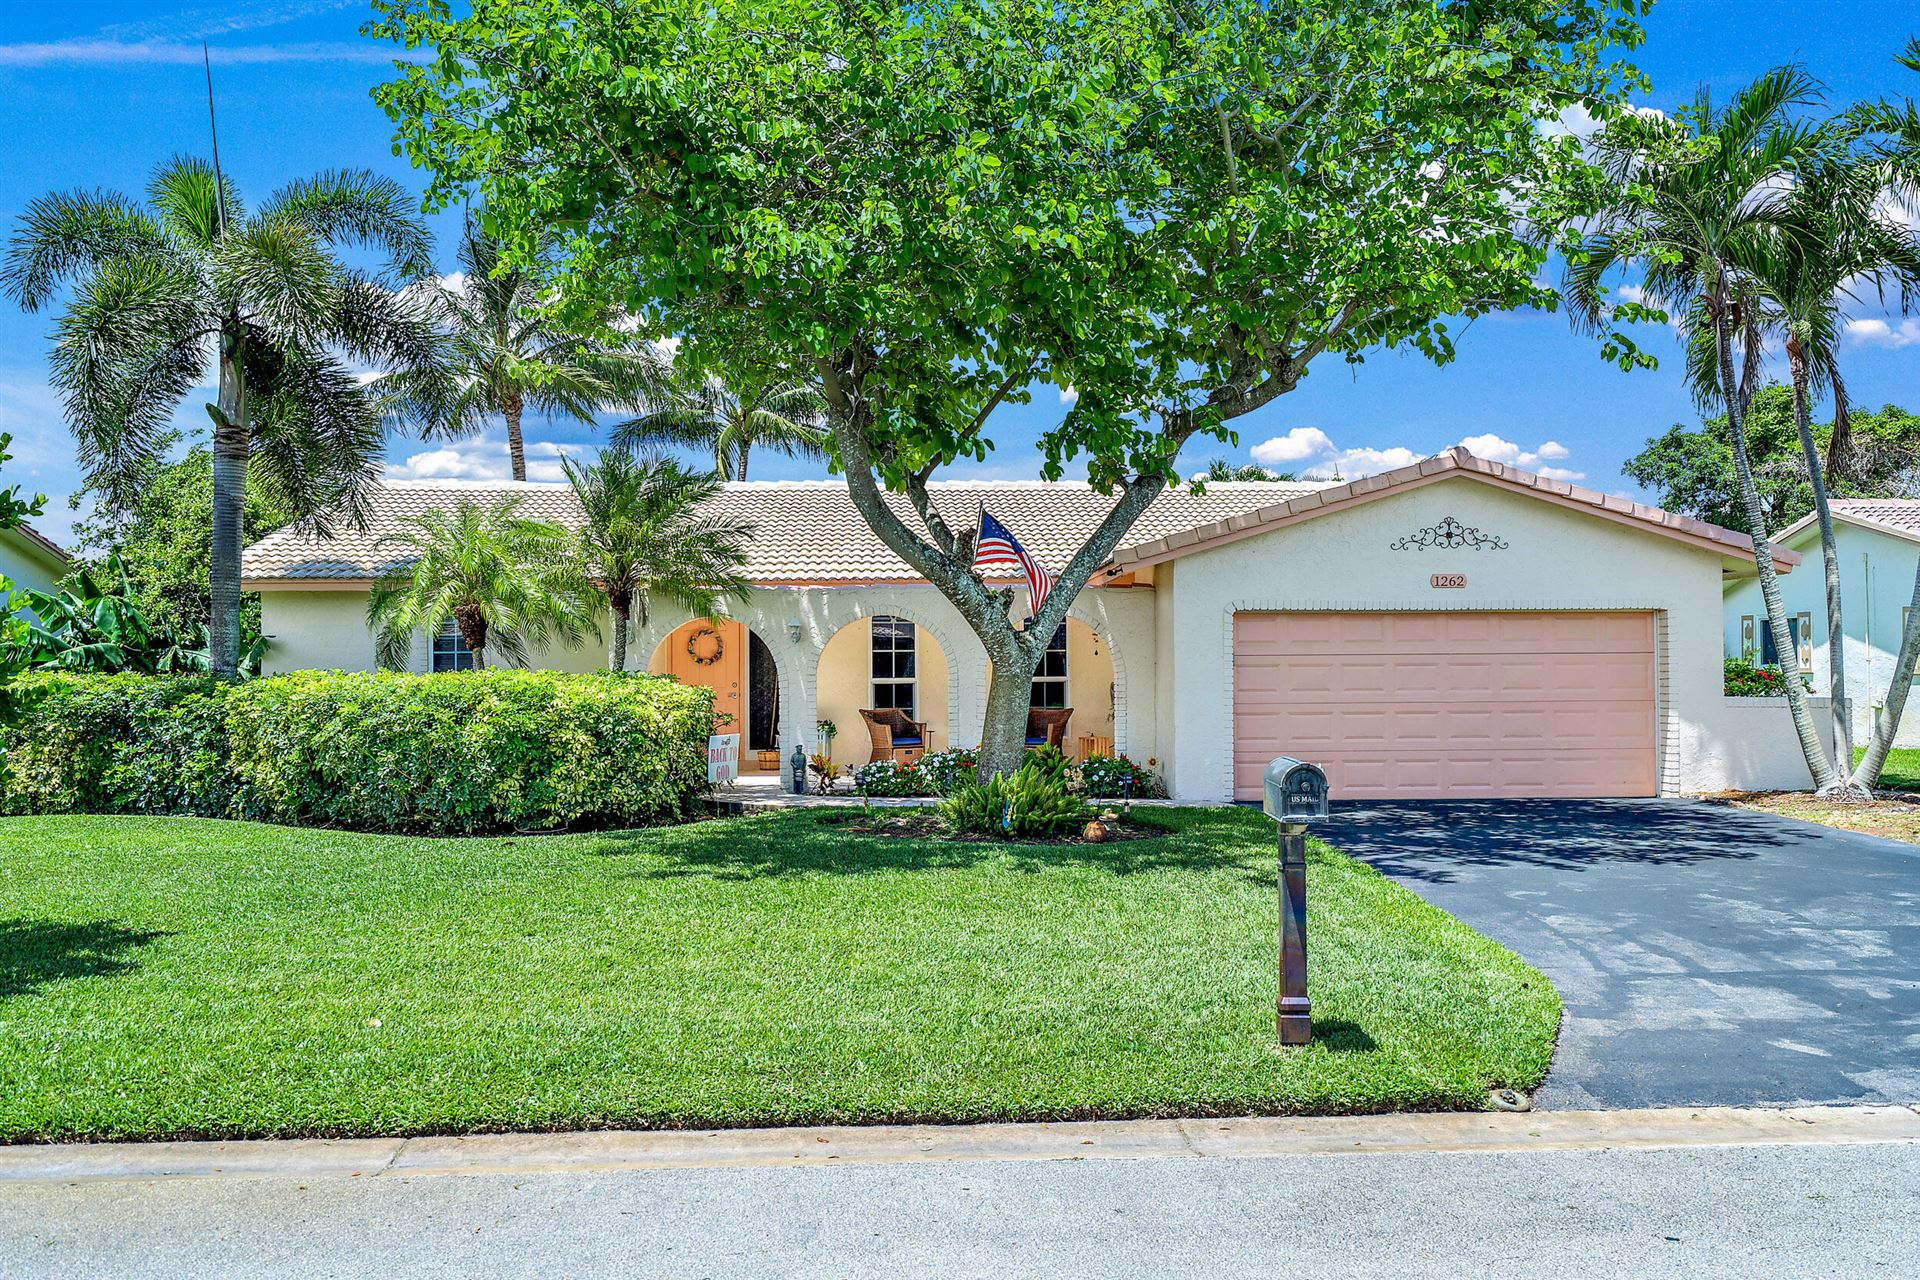 1262 NW 84th Drive, Coral Springs, FL 33071 - #: RX-10721454